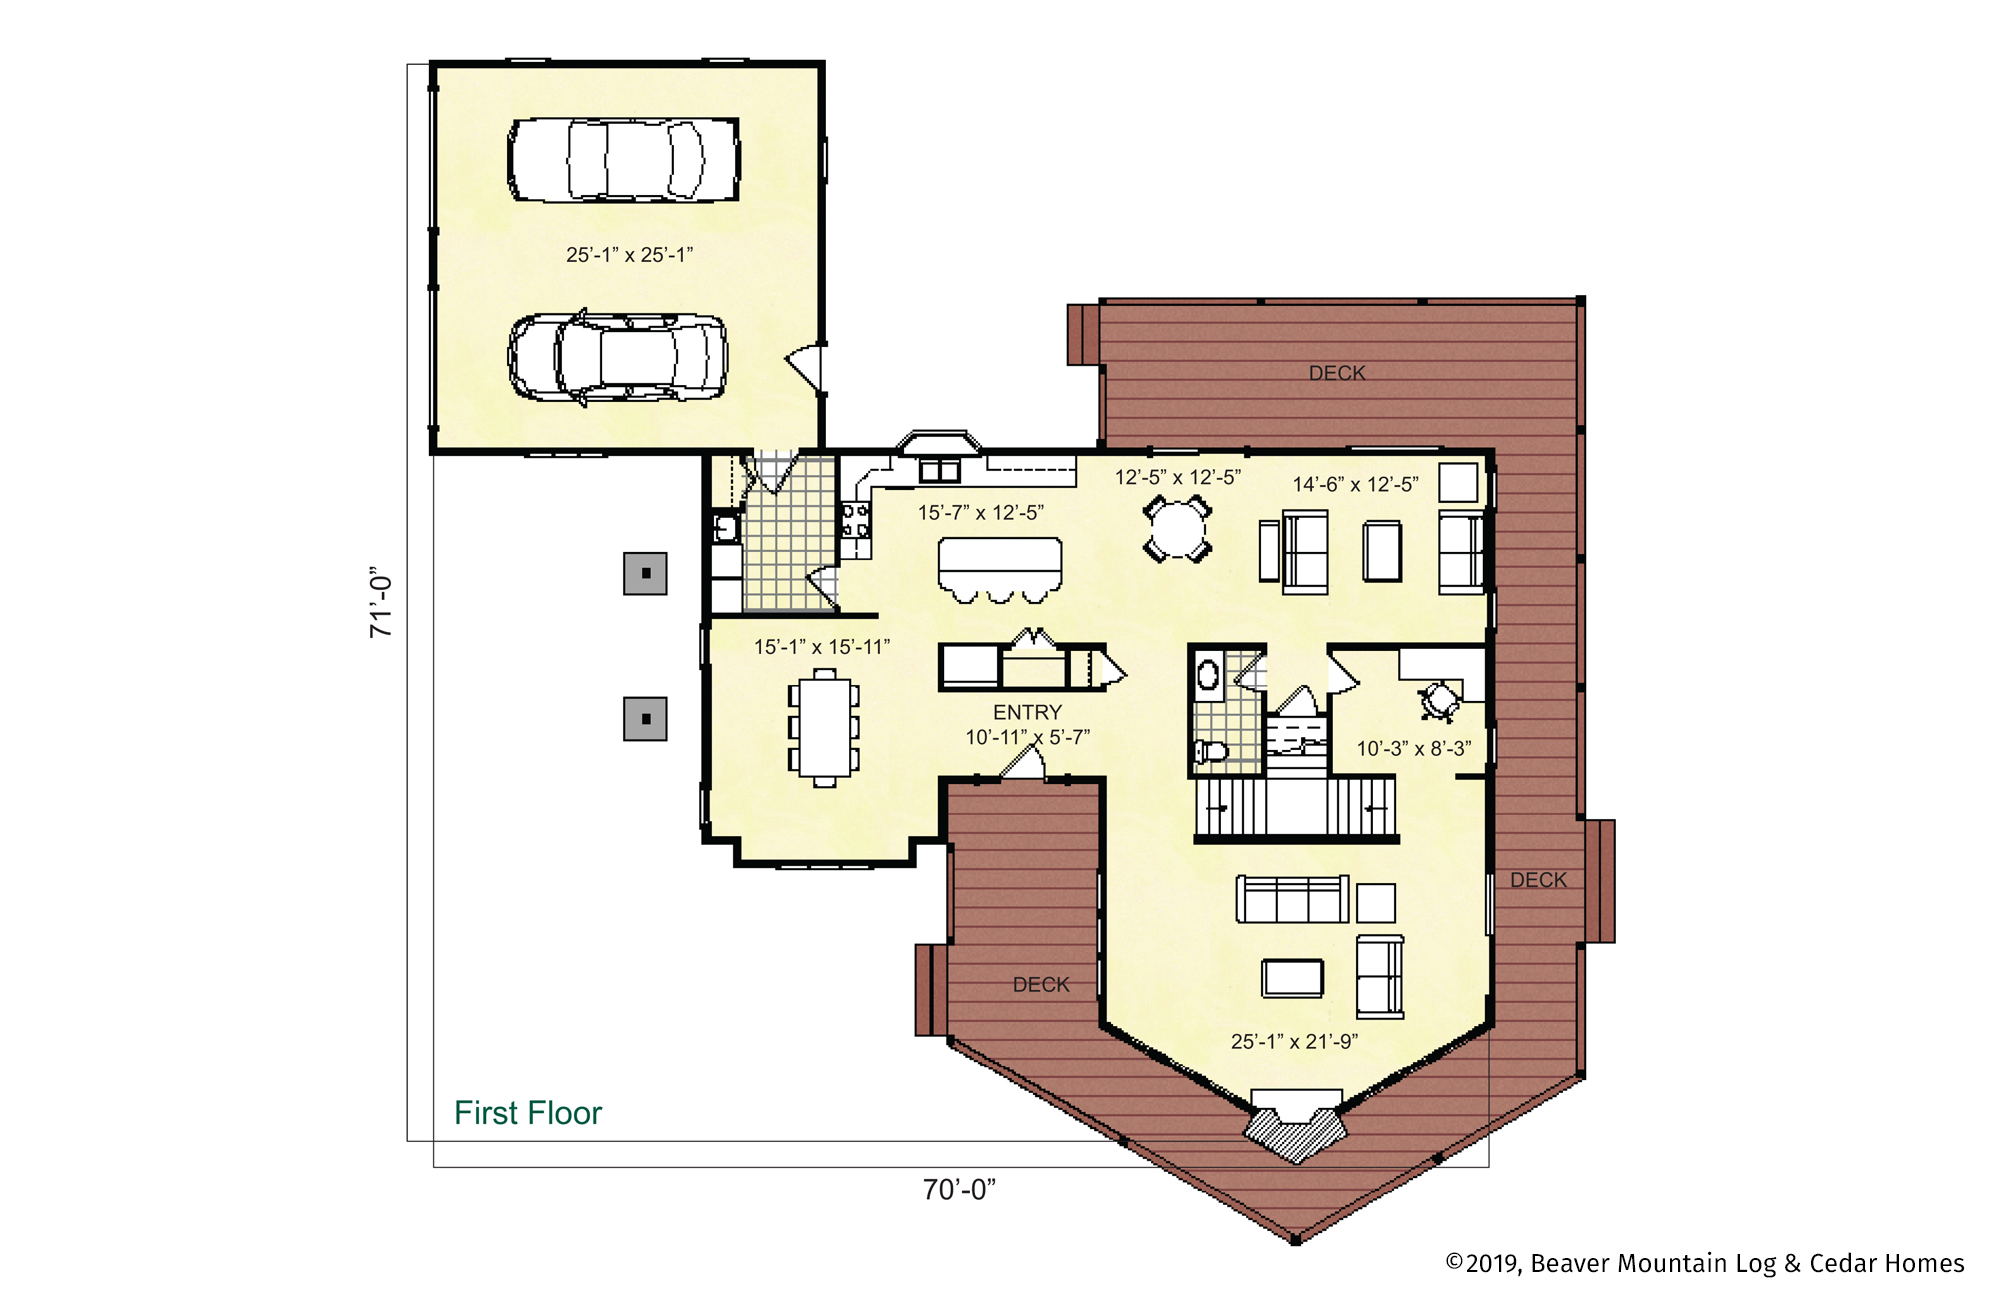 Beaver Mountain Log Homes Grand Gorge Main Level Floor Plan